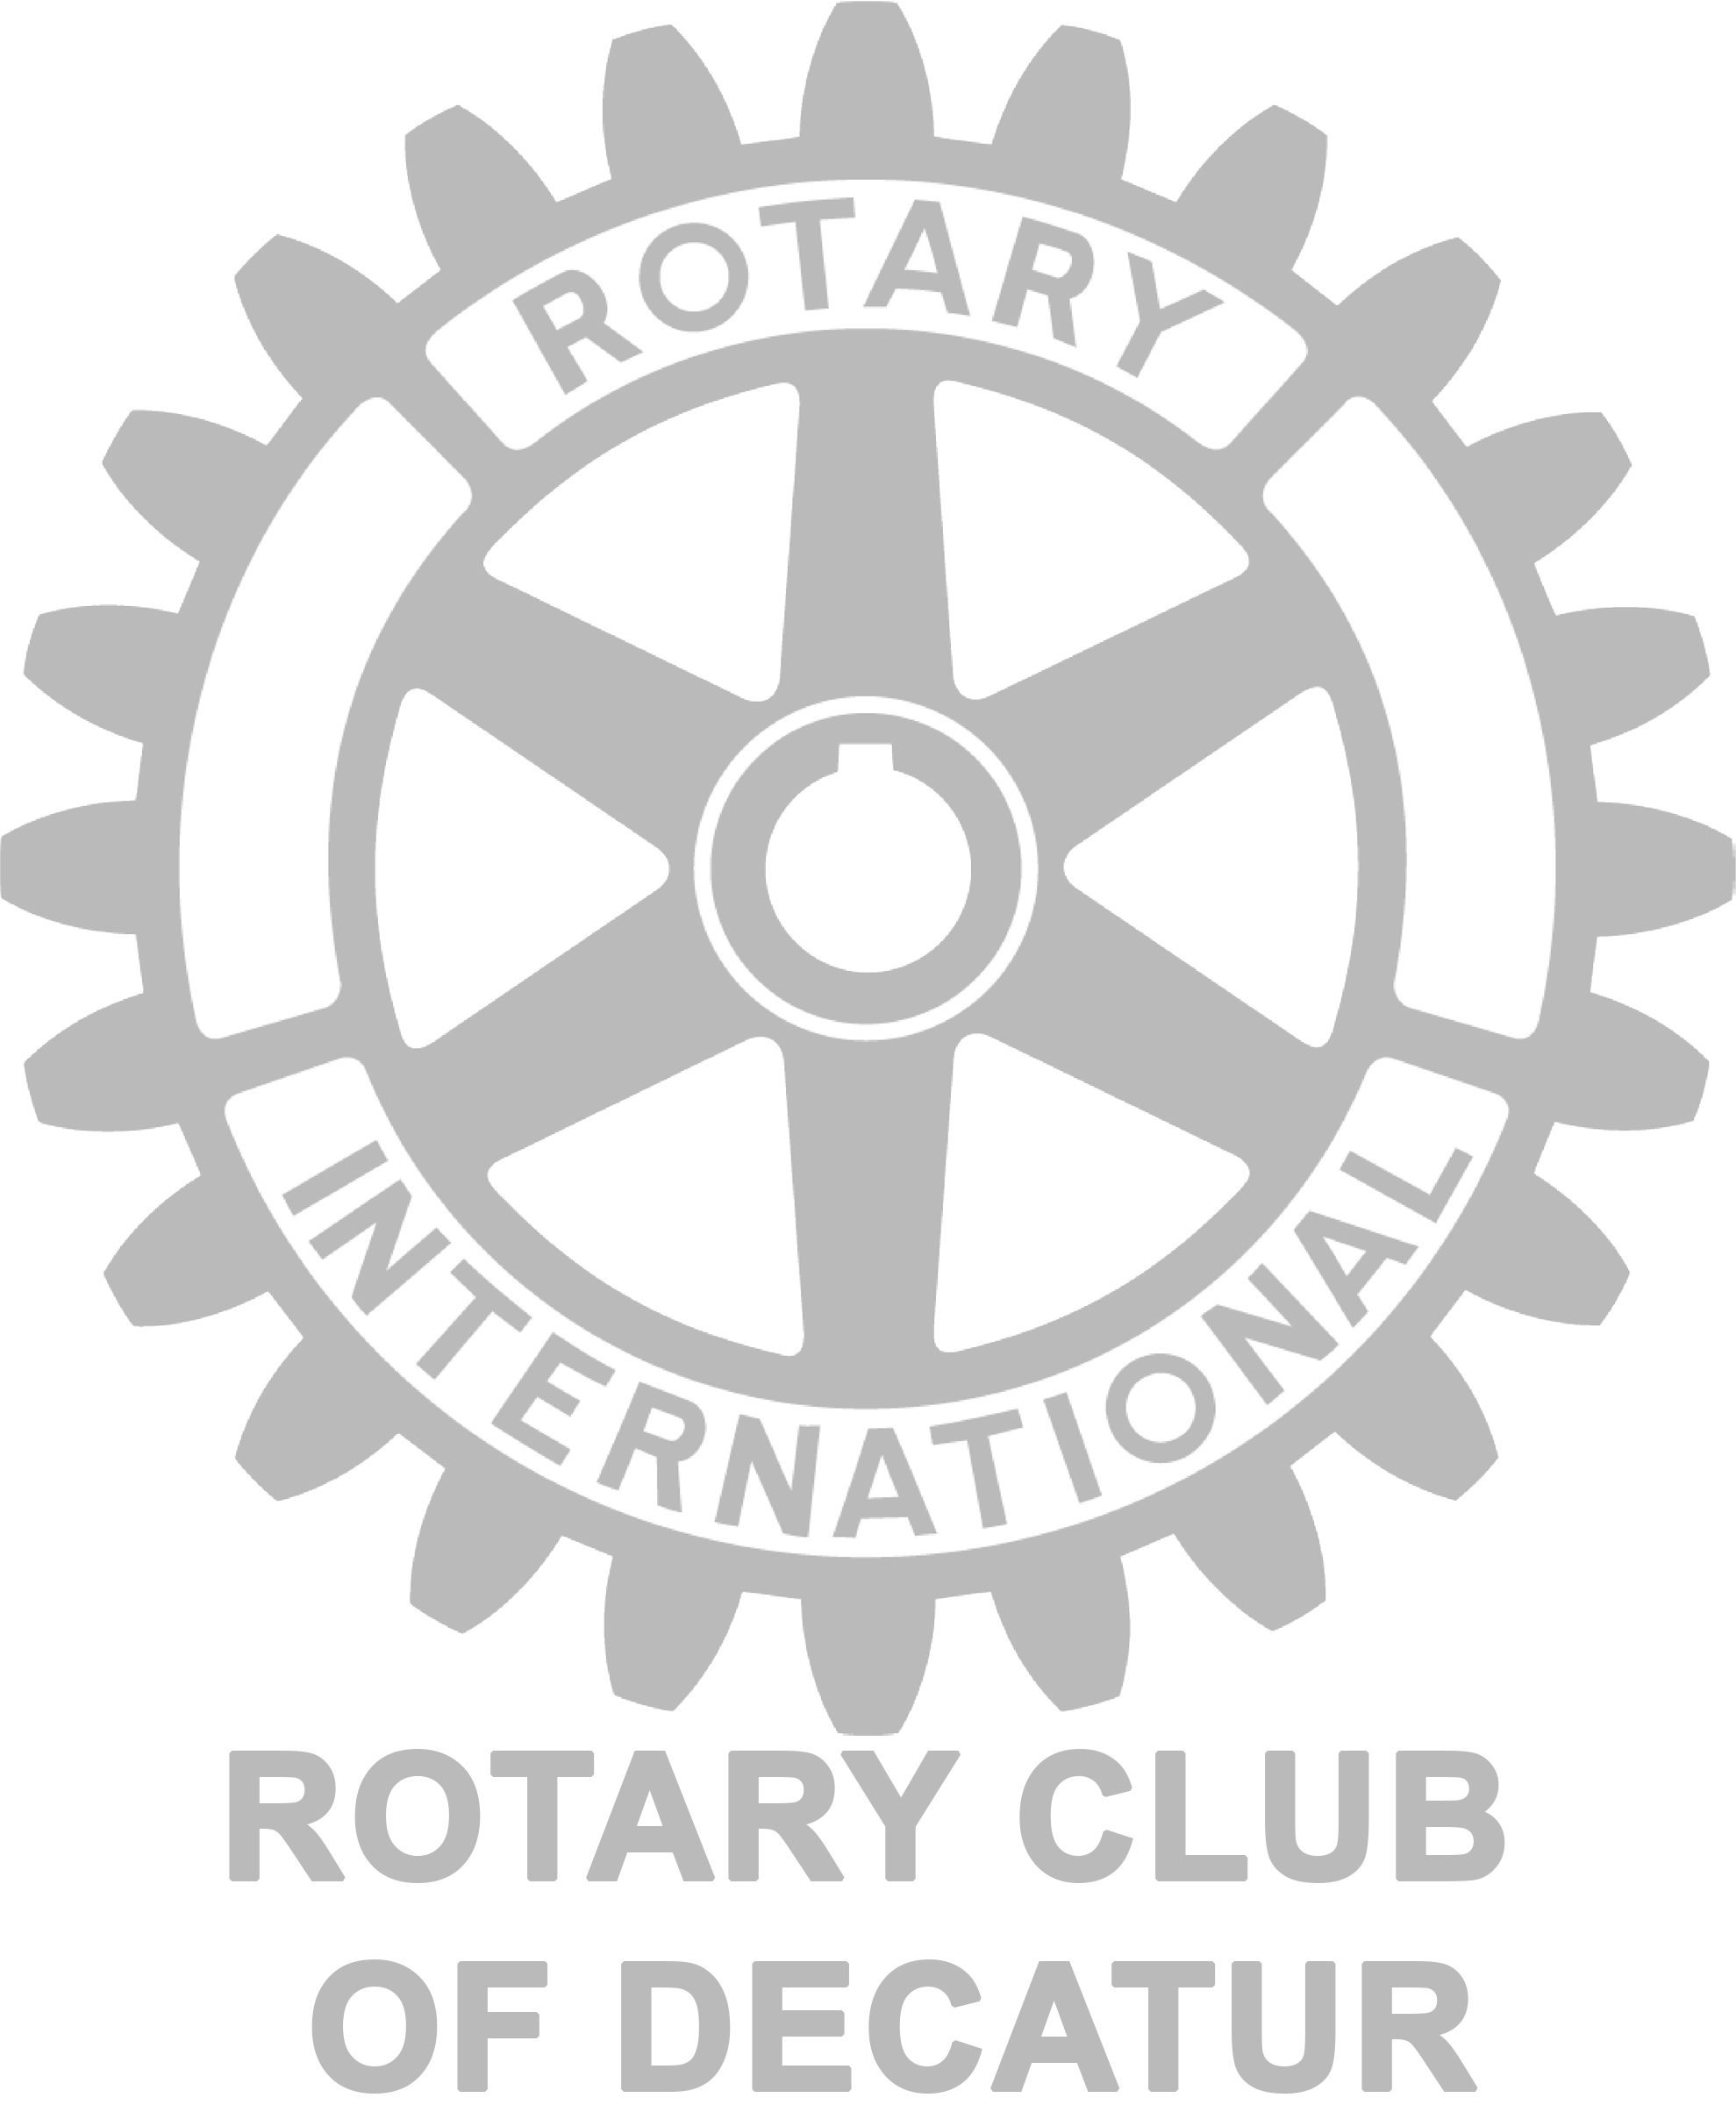 Rotary club of decatur copy.png